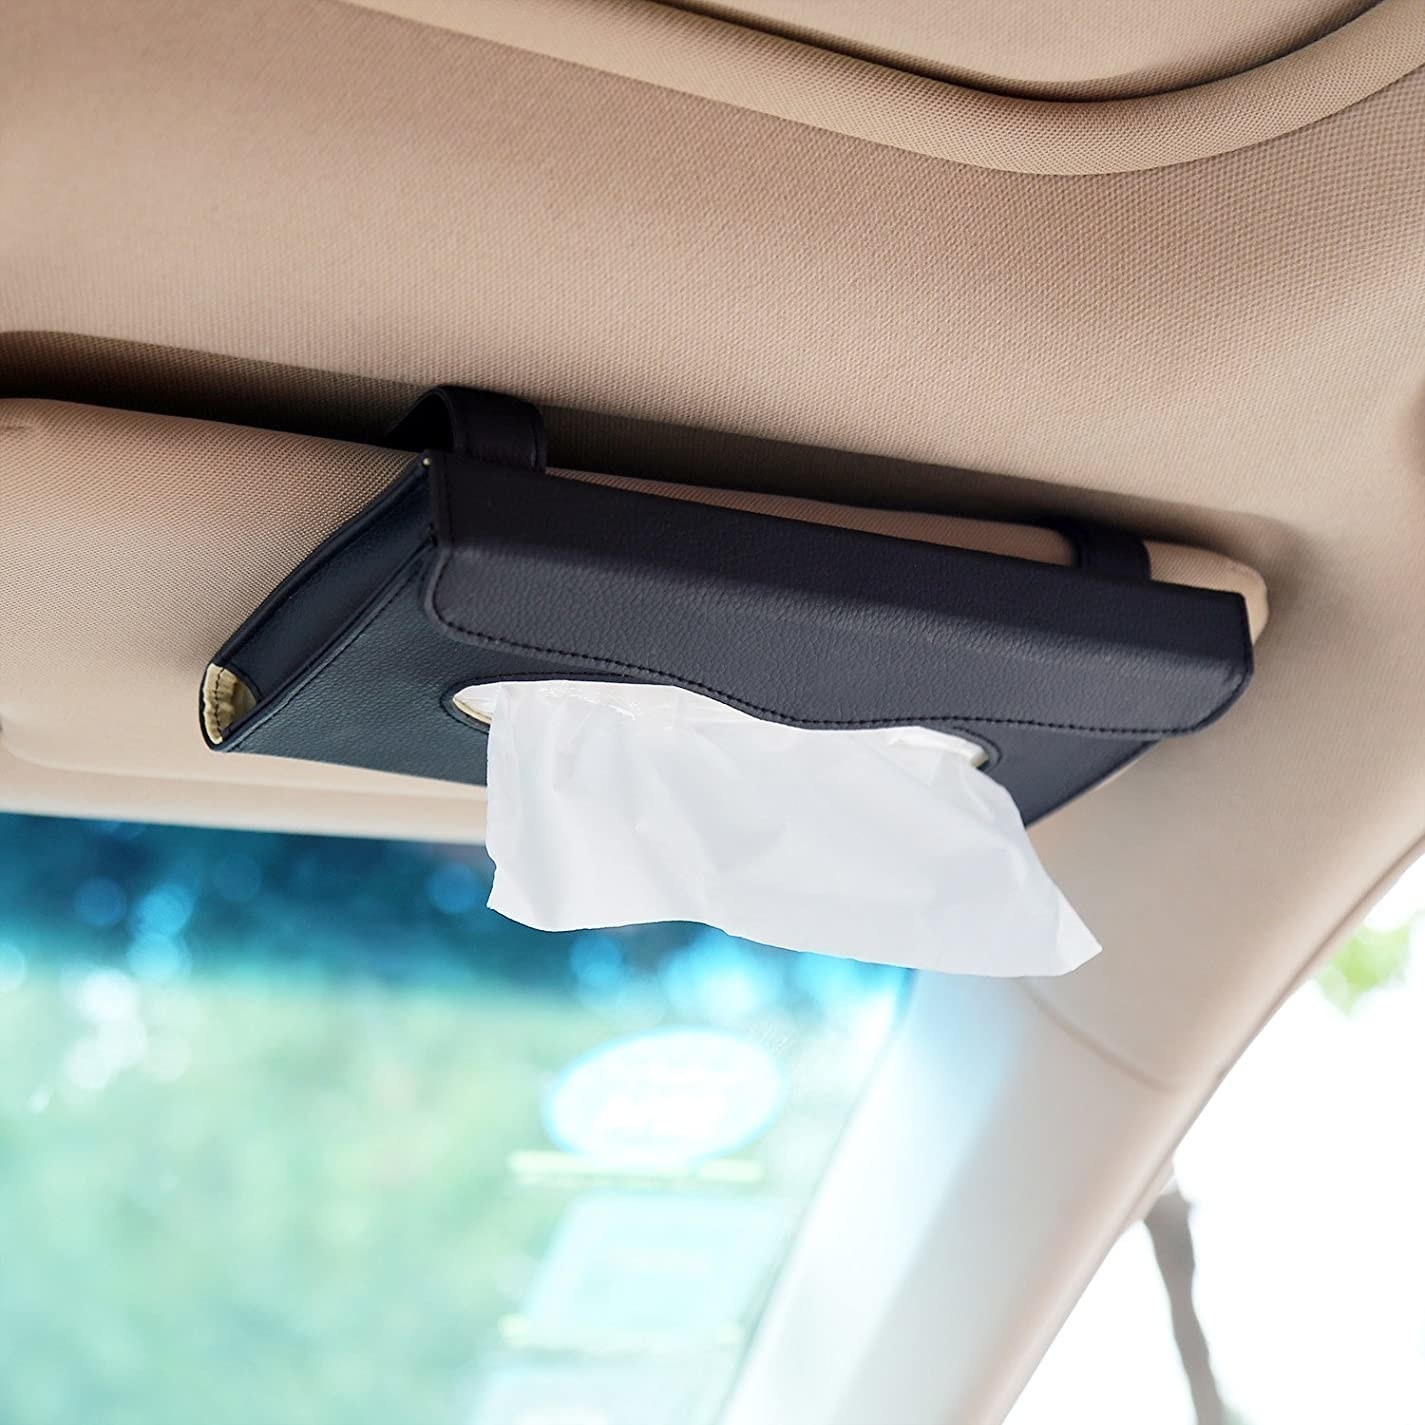 The car tissue box hung on the visor